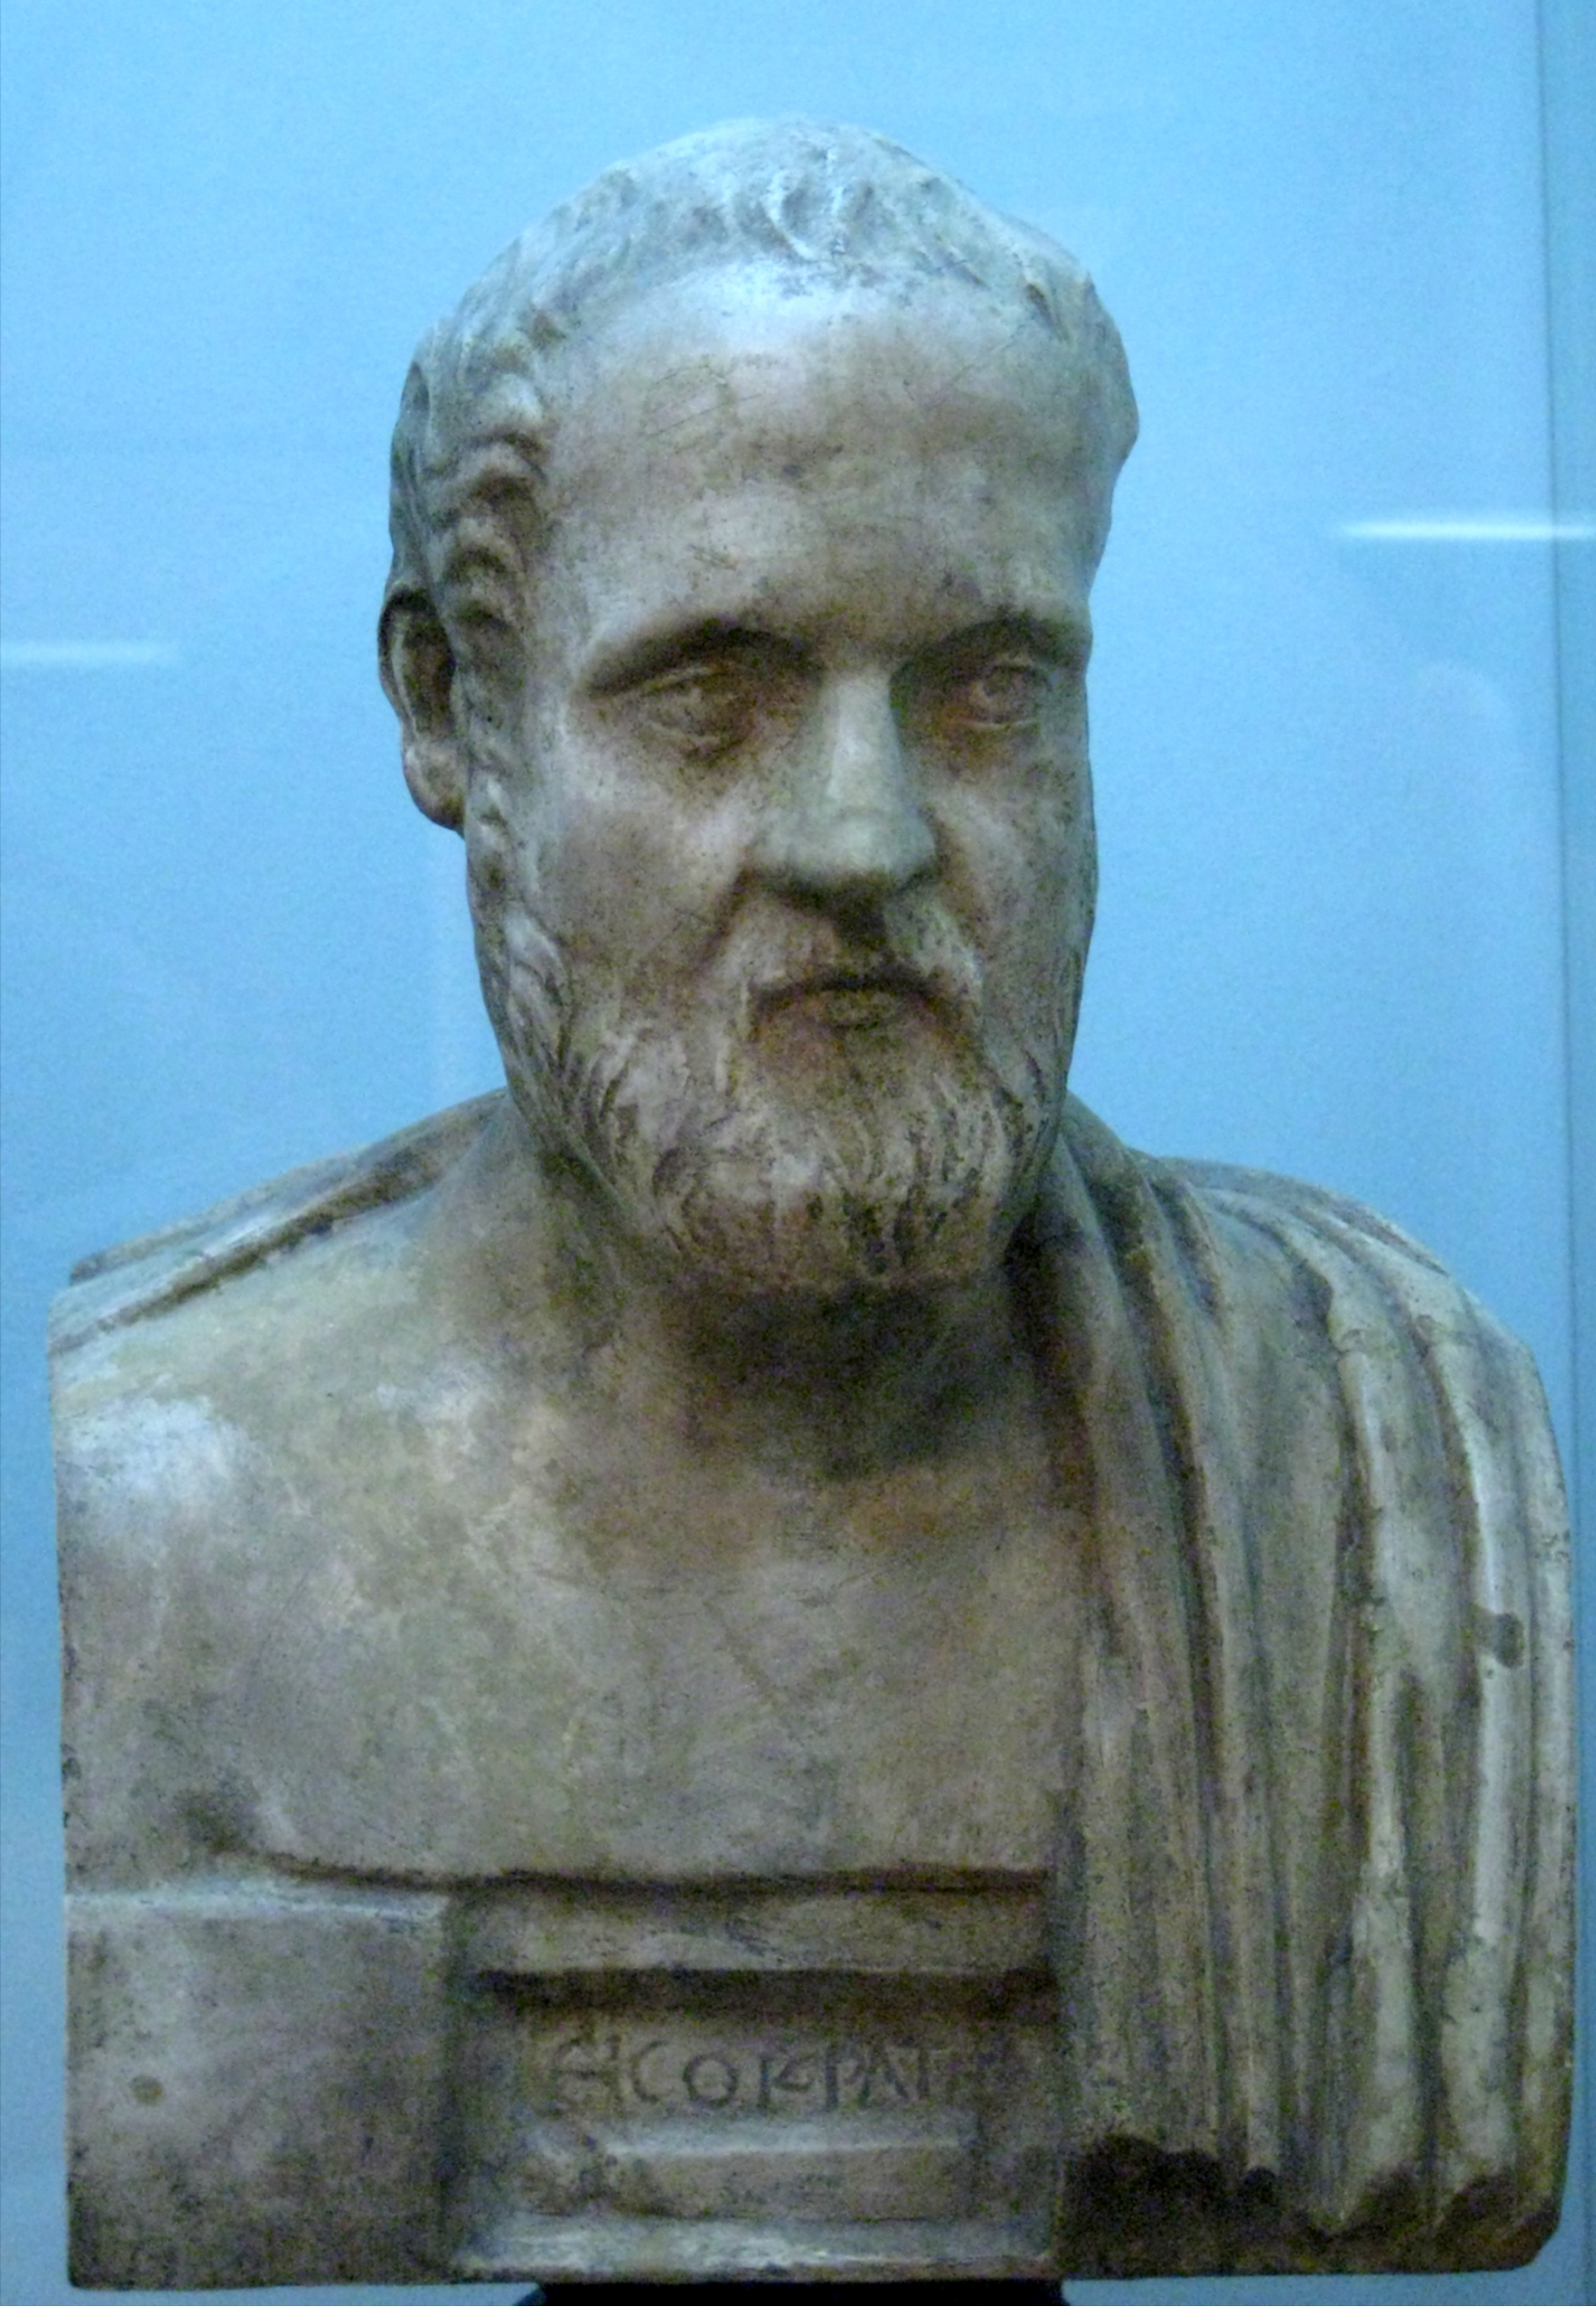 Bust of Isocrates